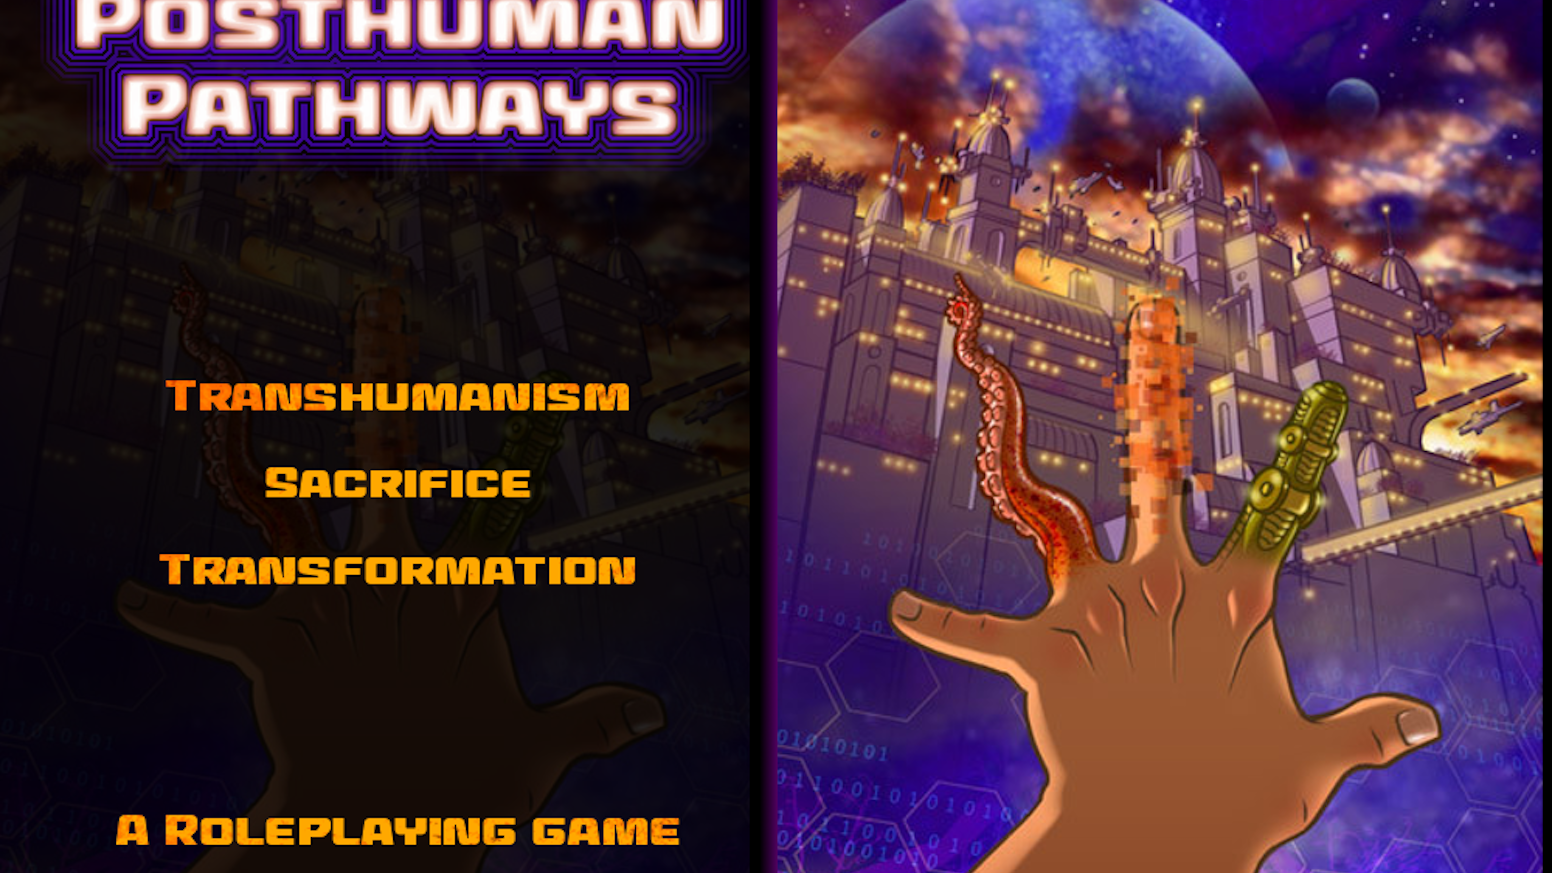 A Roleplaying Game of Transhumanism, Sacrifice and Transformation.